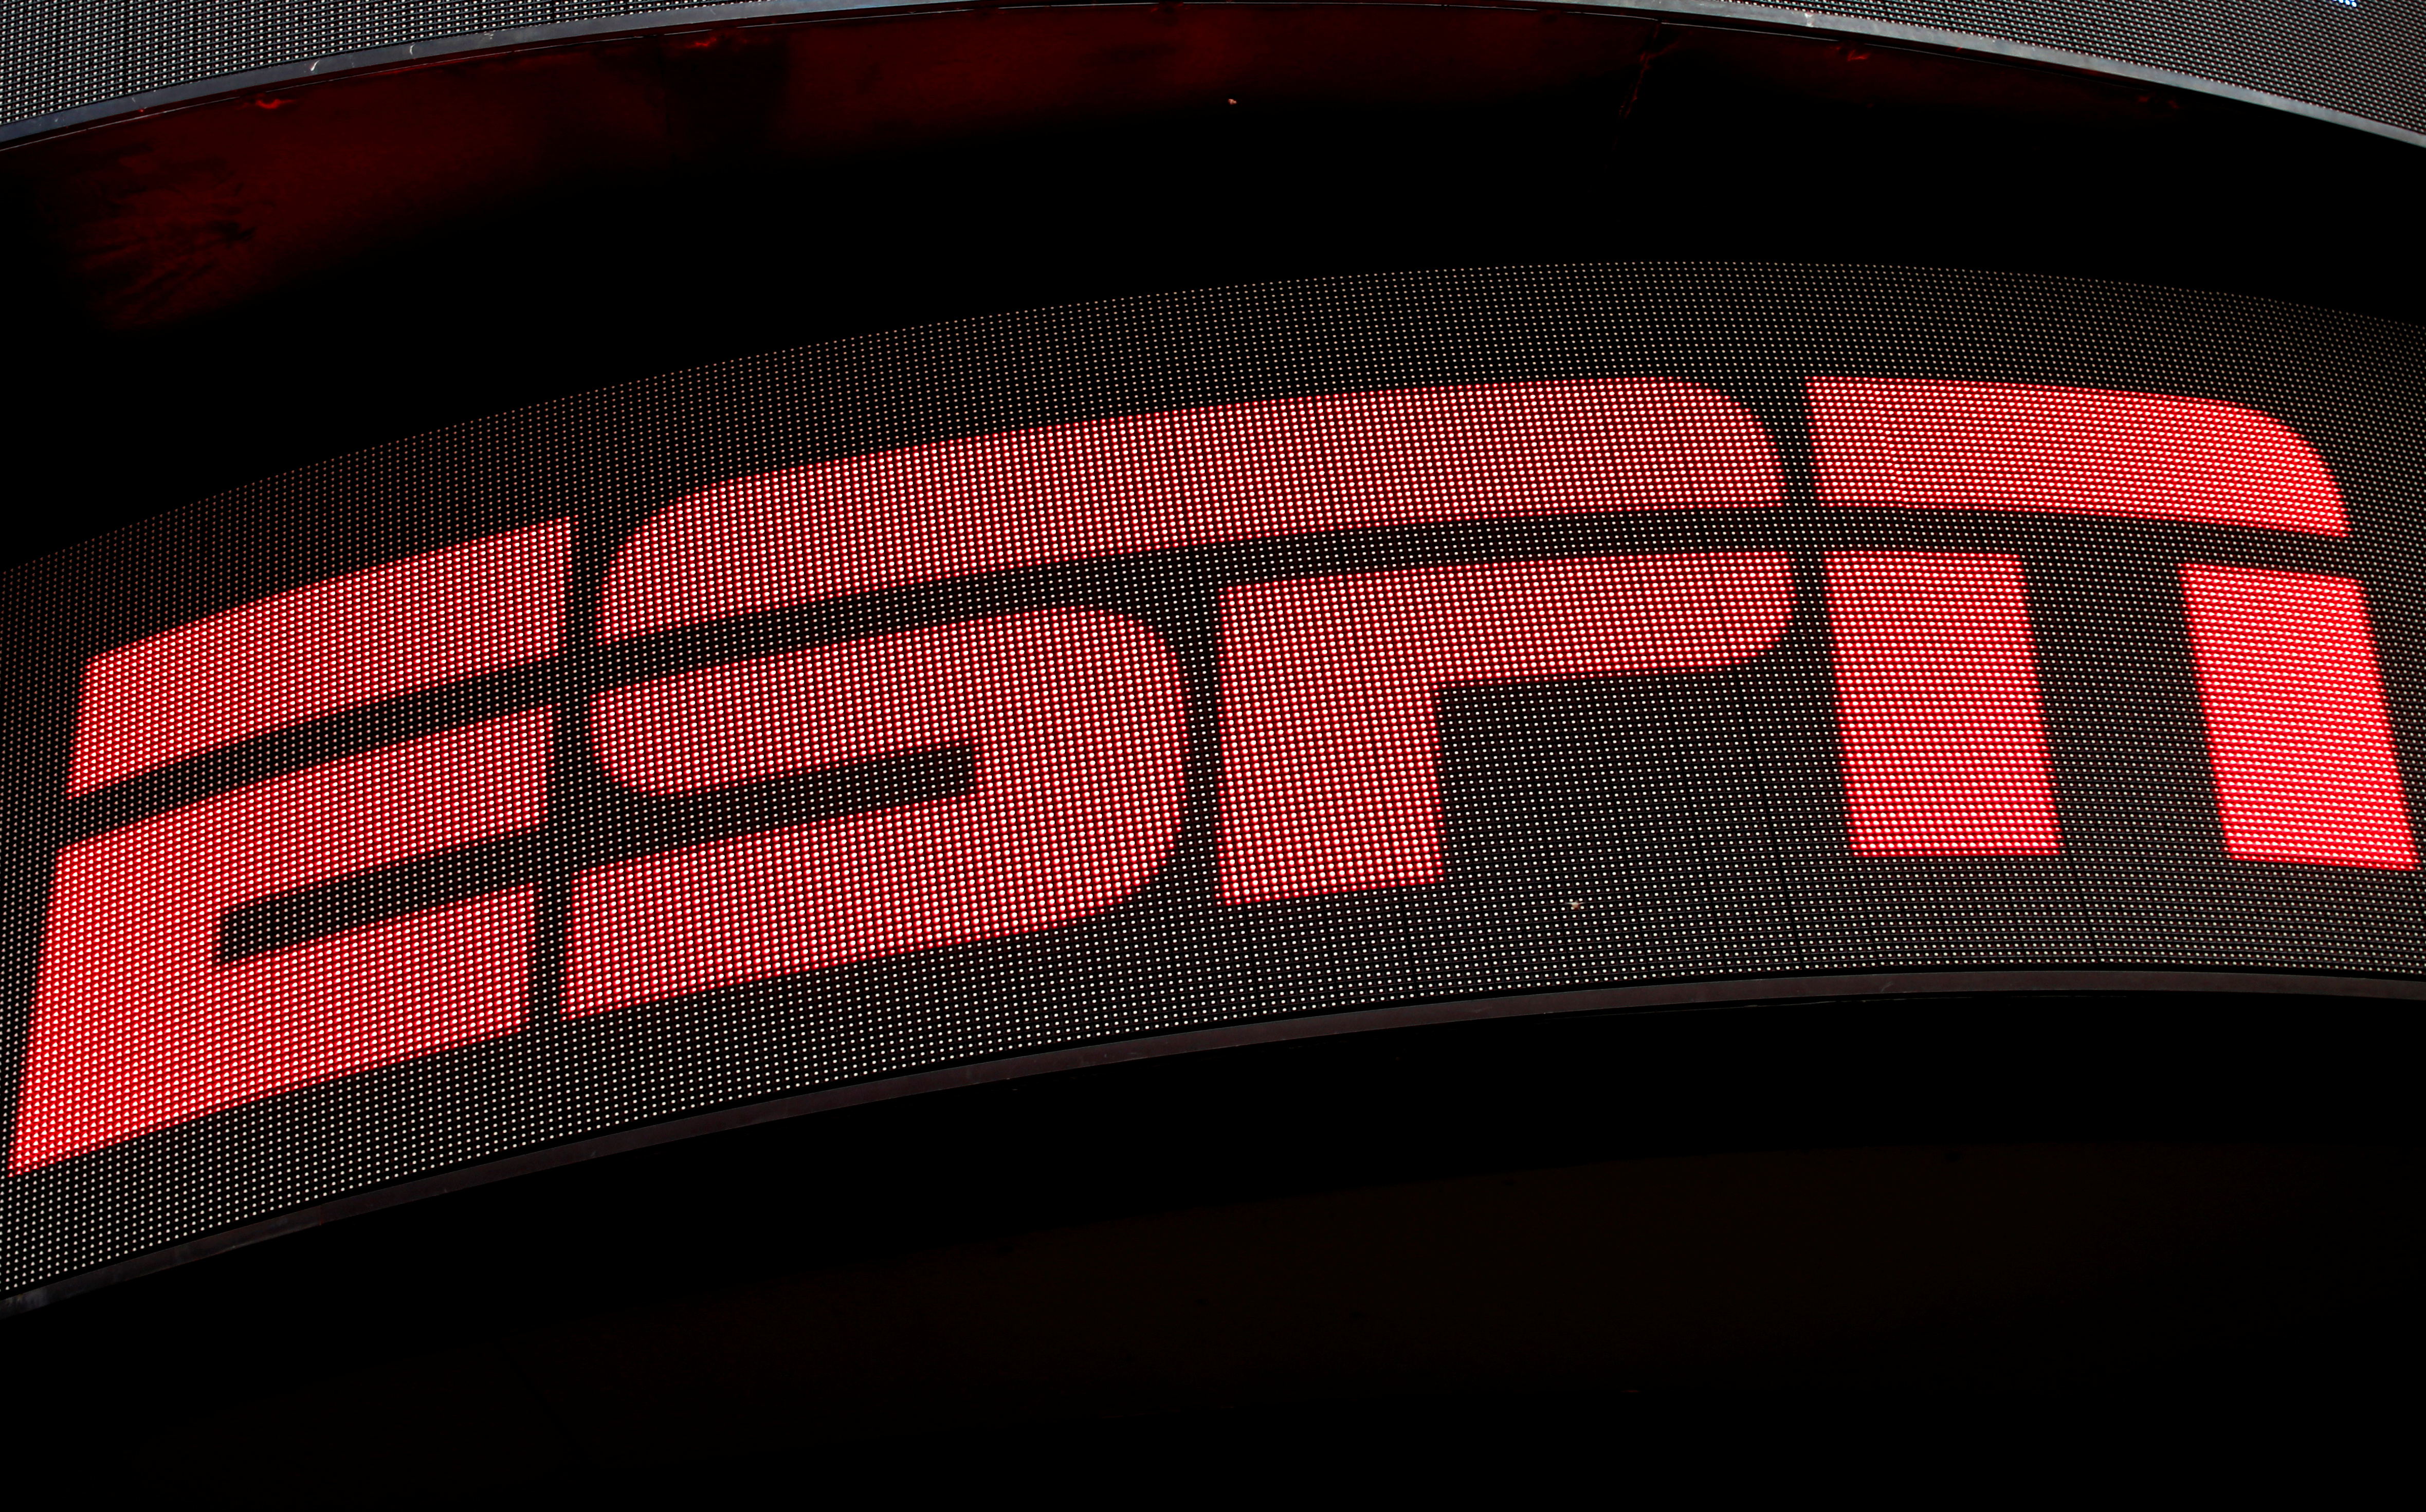 The ESPN logo is seen on an electronic display in Times Square in New York City, U.S., August 23, 2017.  REUTERS/Mike Segar